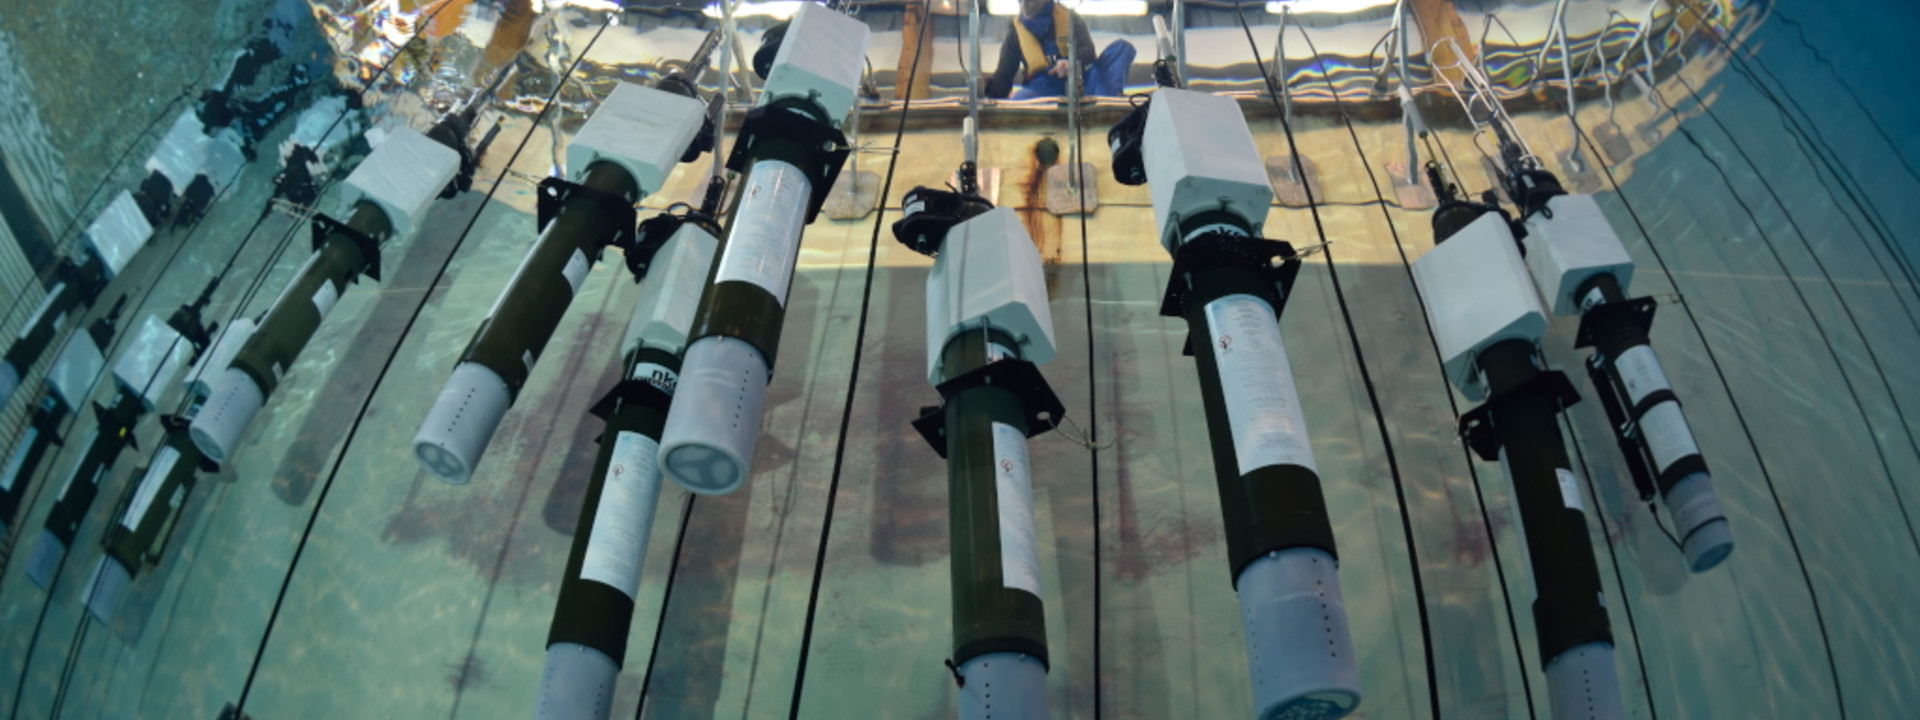 Floats tested in Ifremer tank